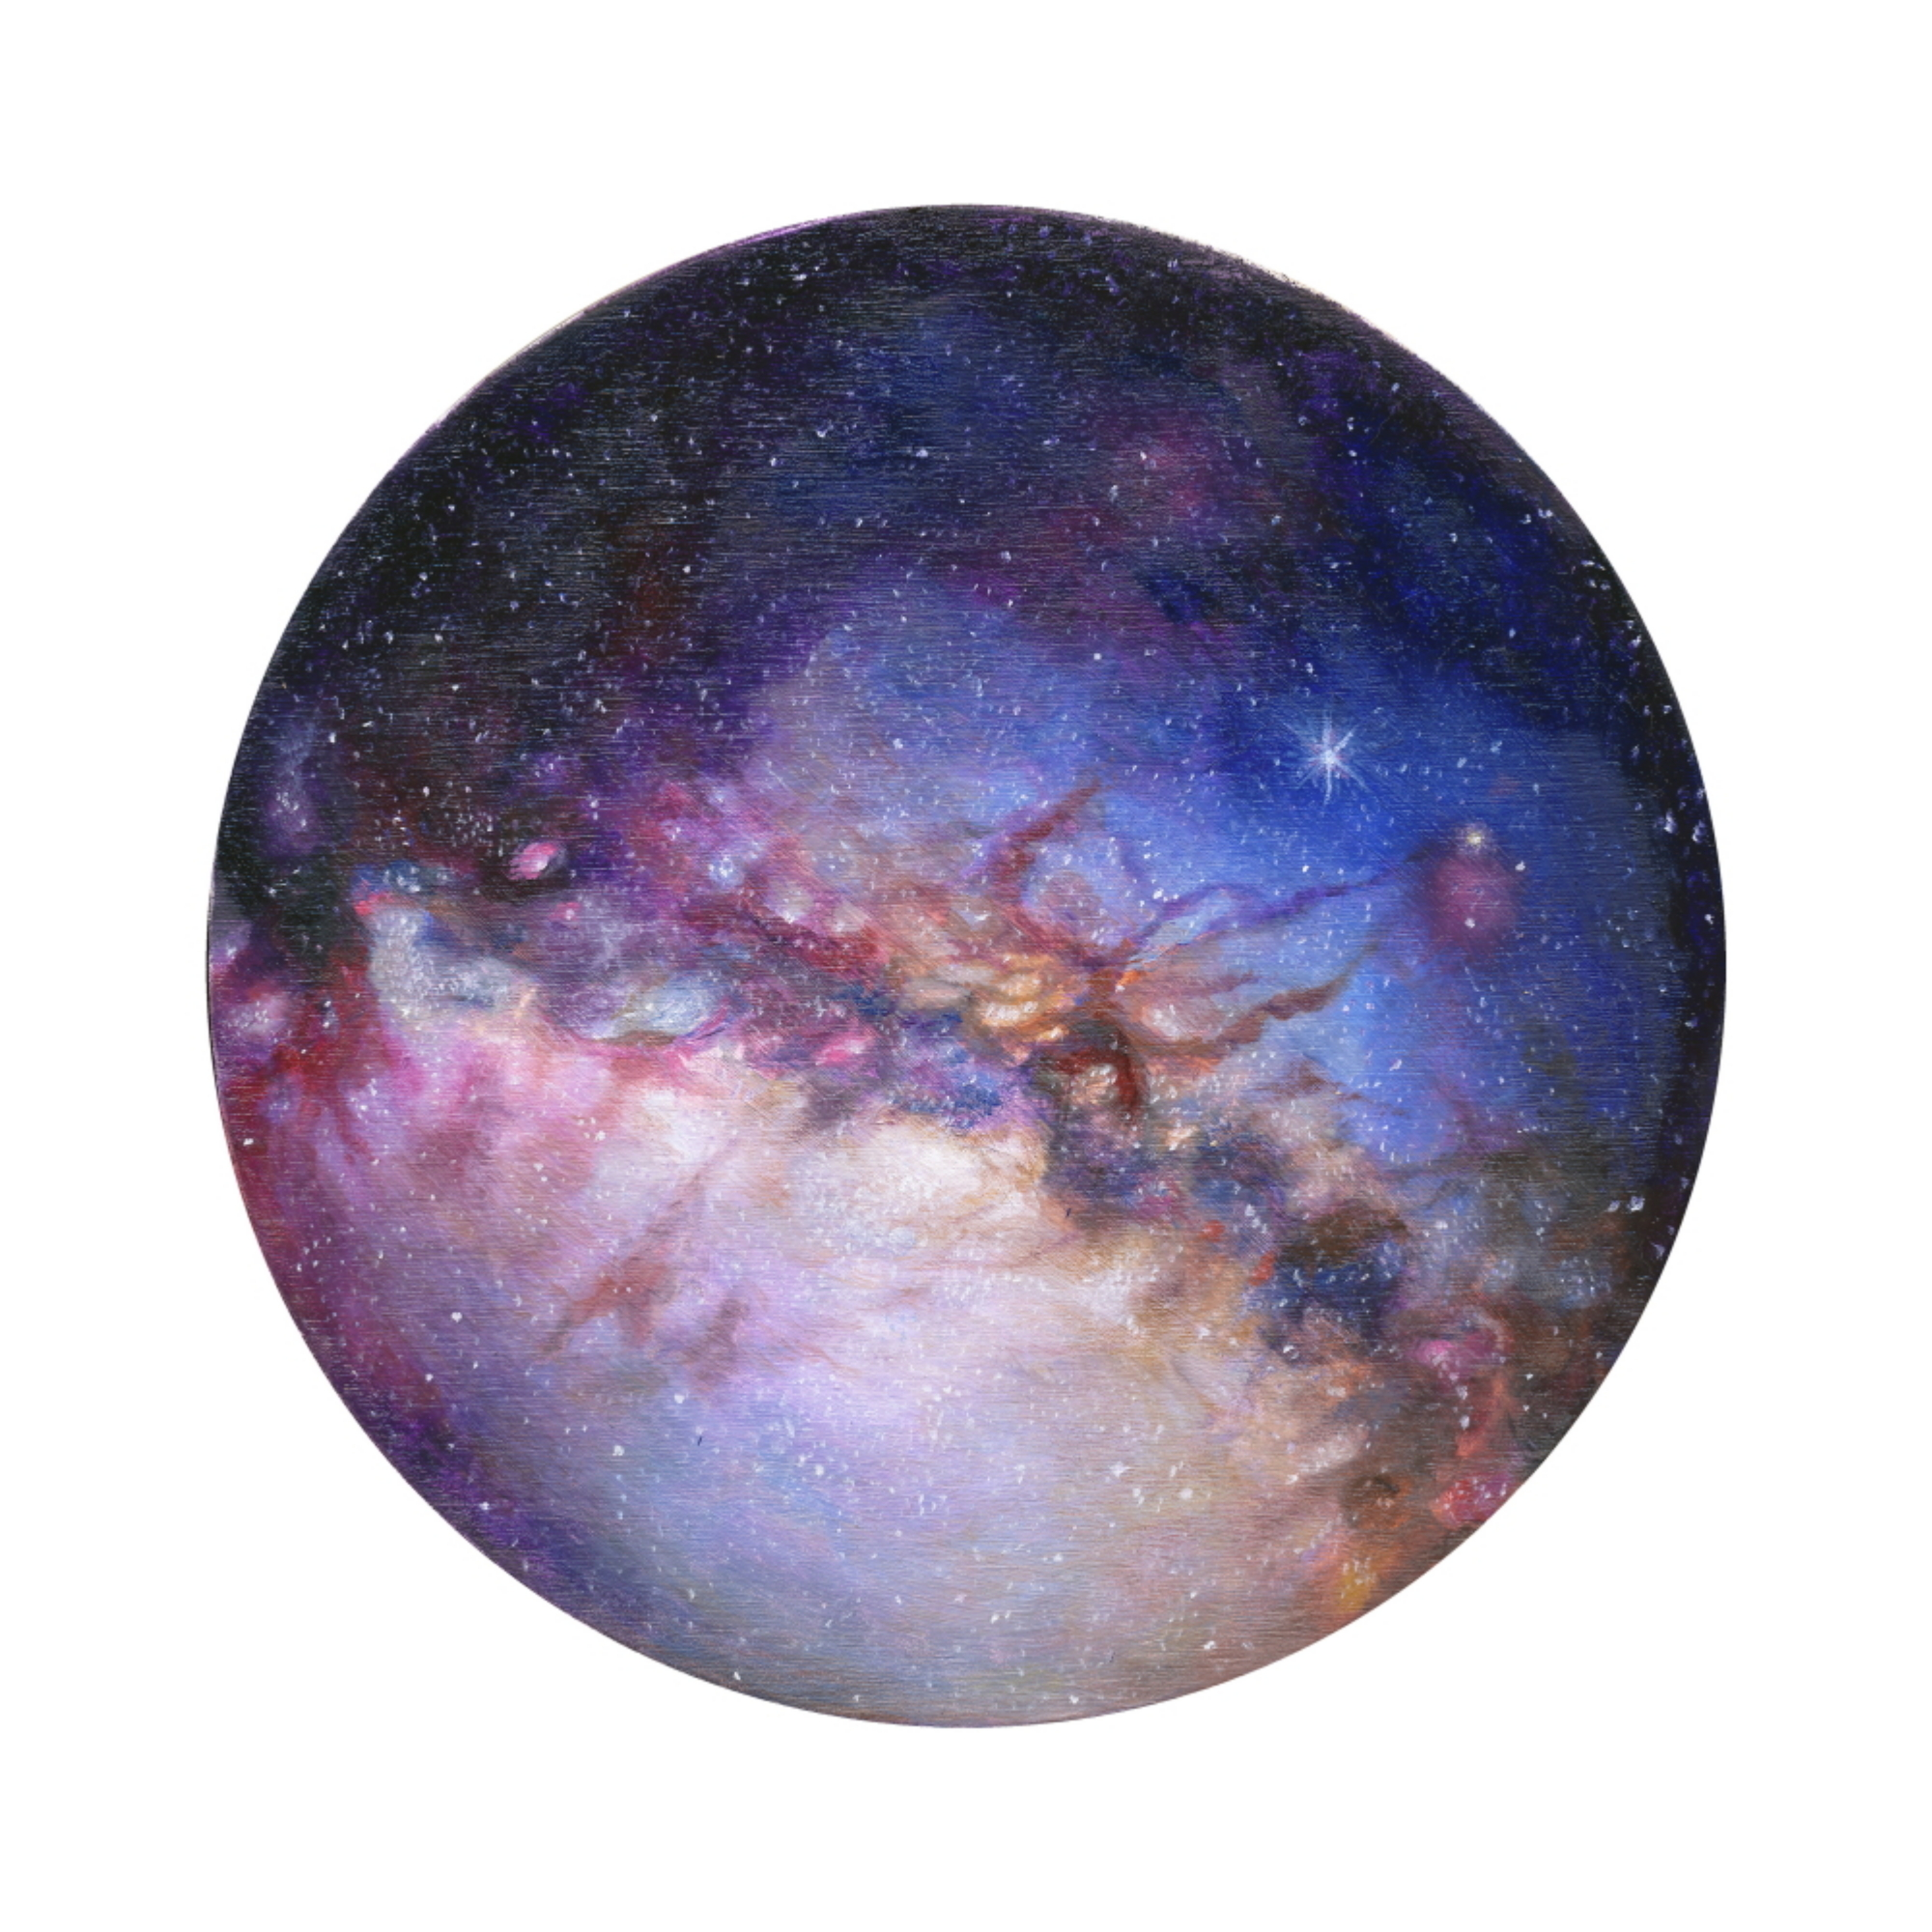 Milky Way (ITEM NO: 003)  Print Size:8x8 inches  $12.50 Wholesale at 50% off  $25 RRP